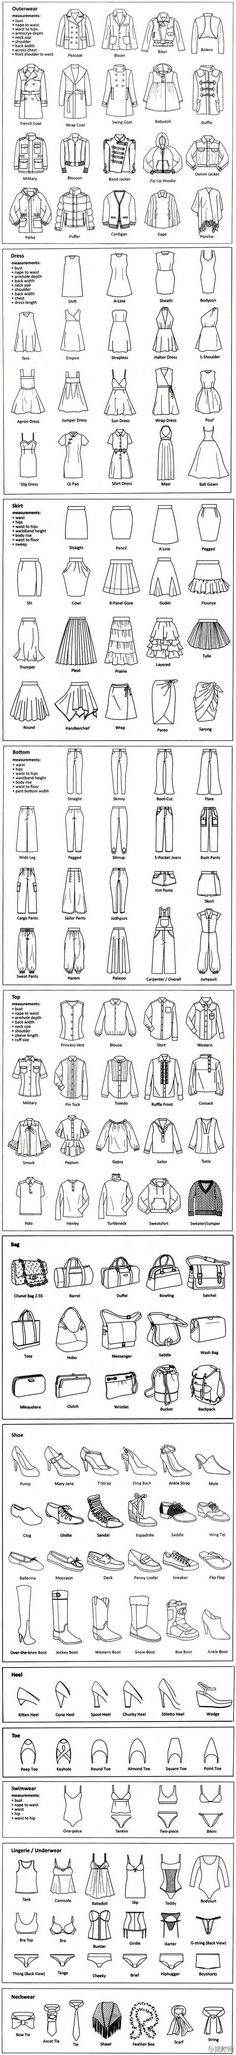 "some of these are very generic or even suspect (""round skirt""? shouldn't it be ""circle""?), but still a nice overview"